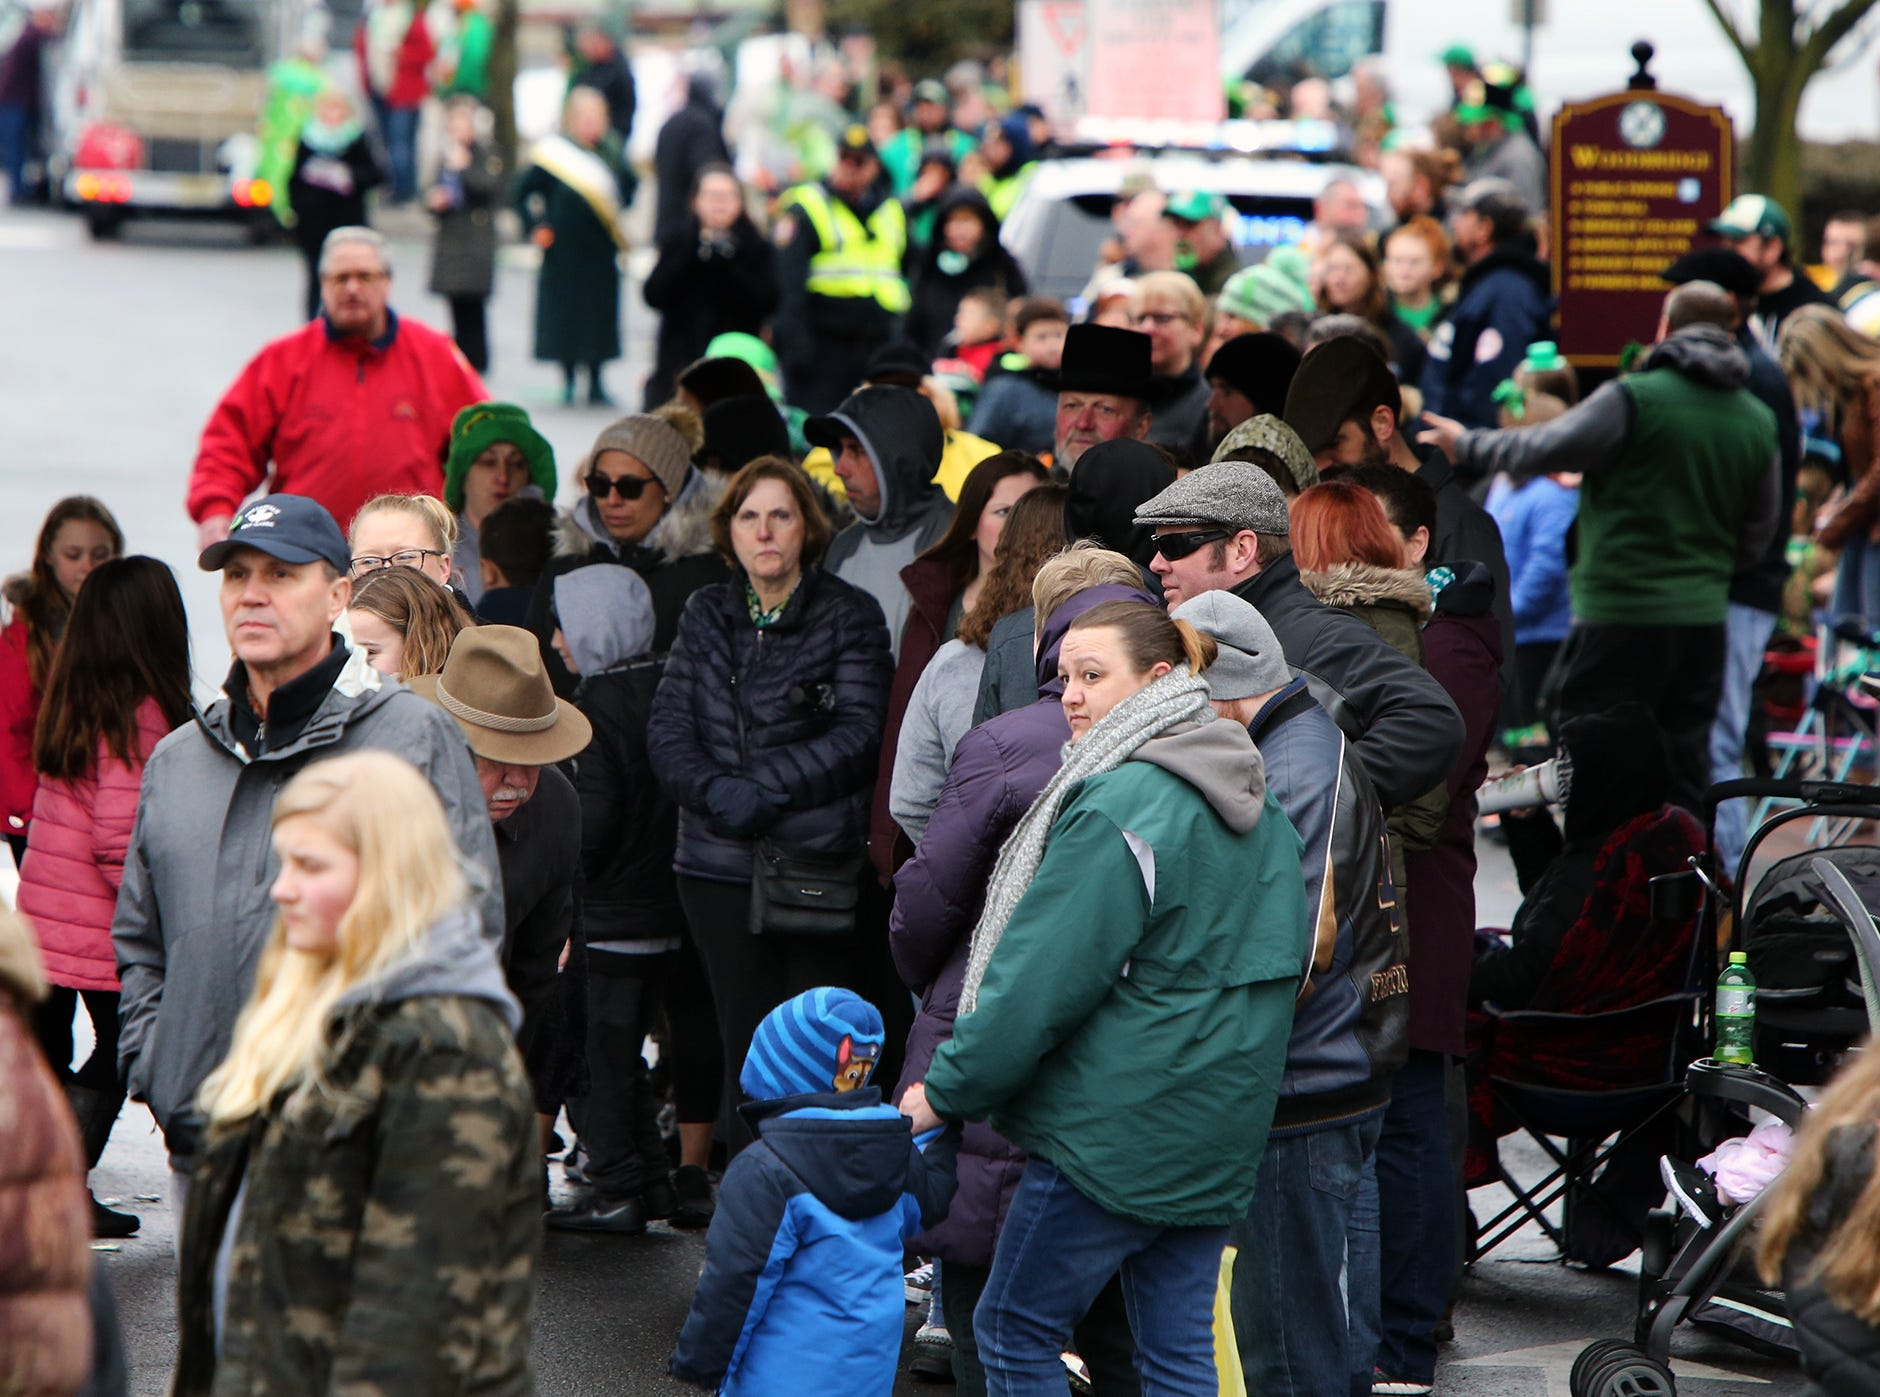 Woodbridge St. Patrick's Day Parade coming down Main St. Sunday March 10, 2019 photo by Ed Pagliarini